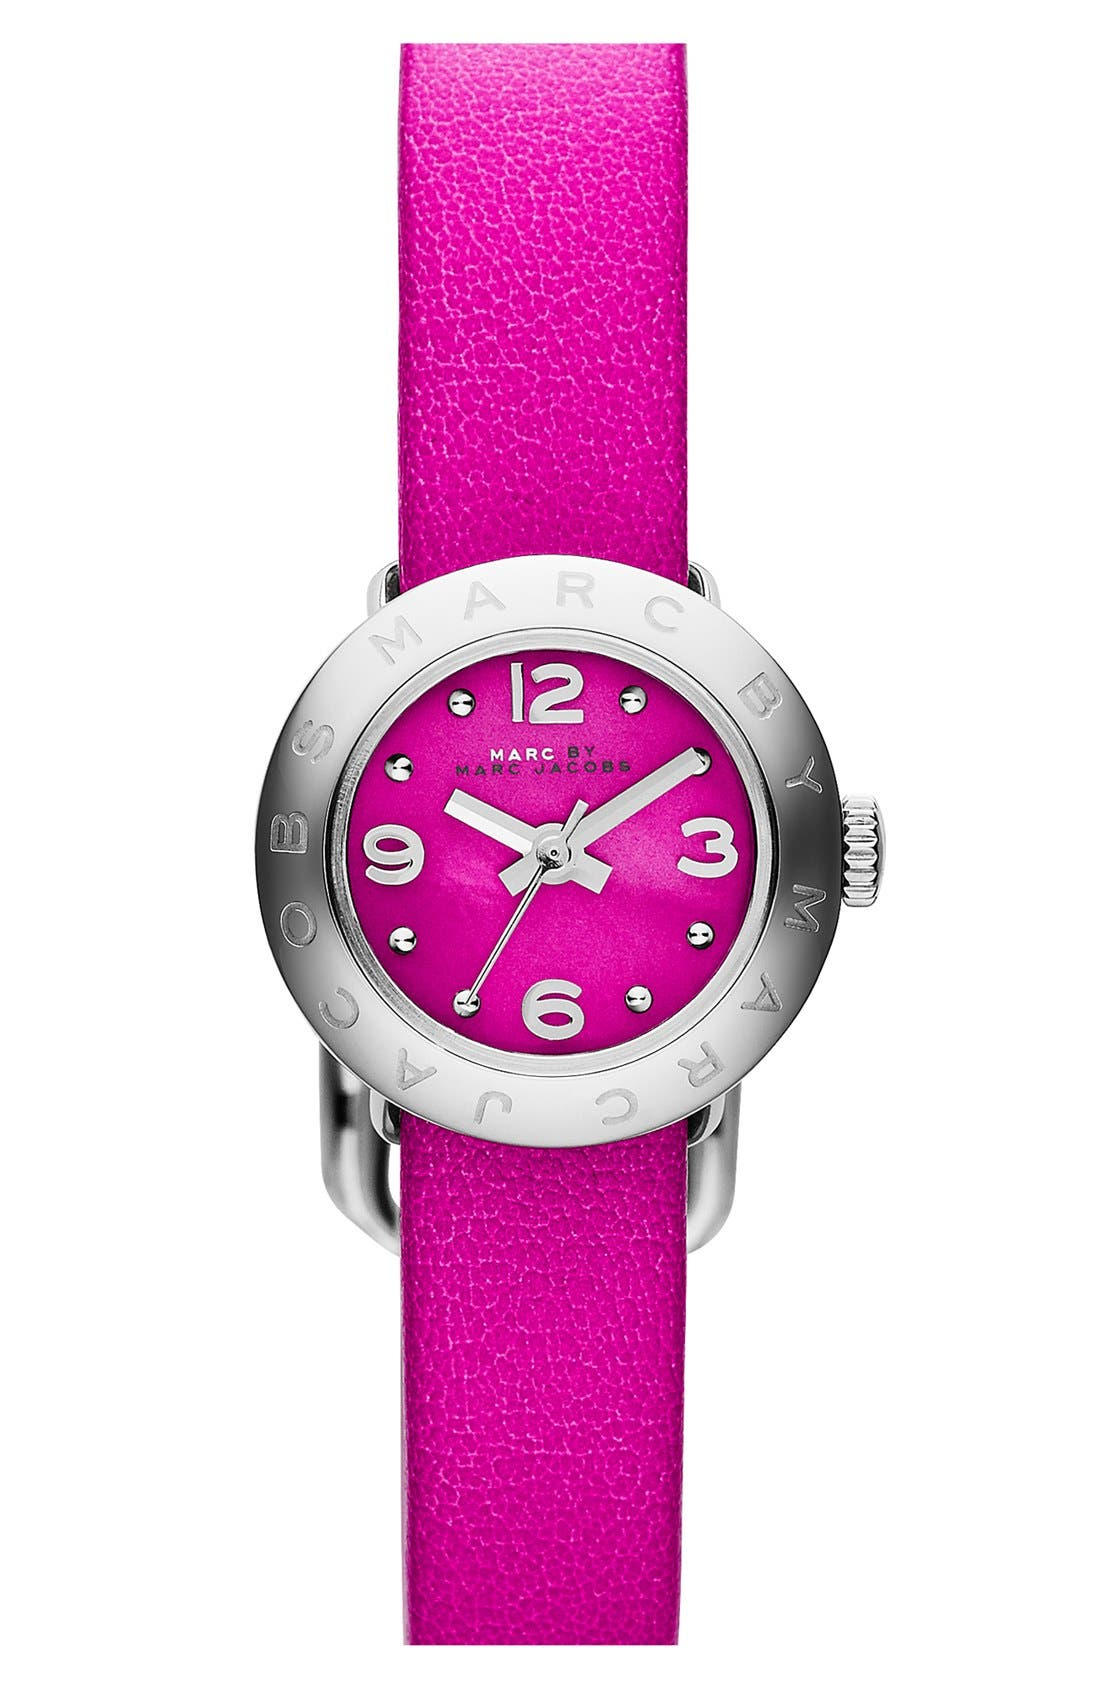 Main Image - MARC BY MARC JACOBS 'Amy Dinky' Leather Strap Watch, 20mm